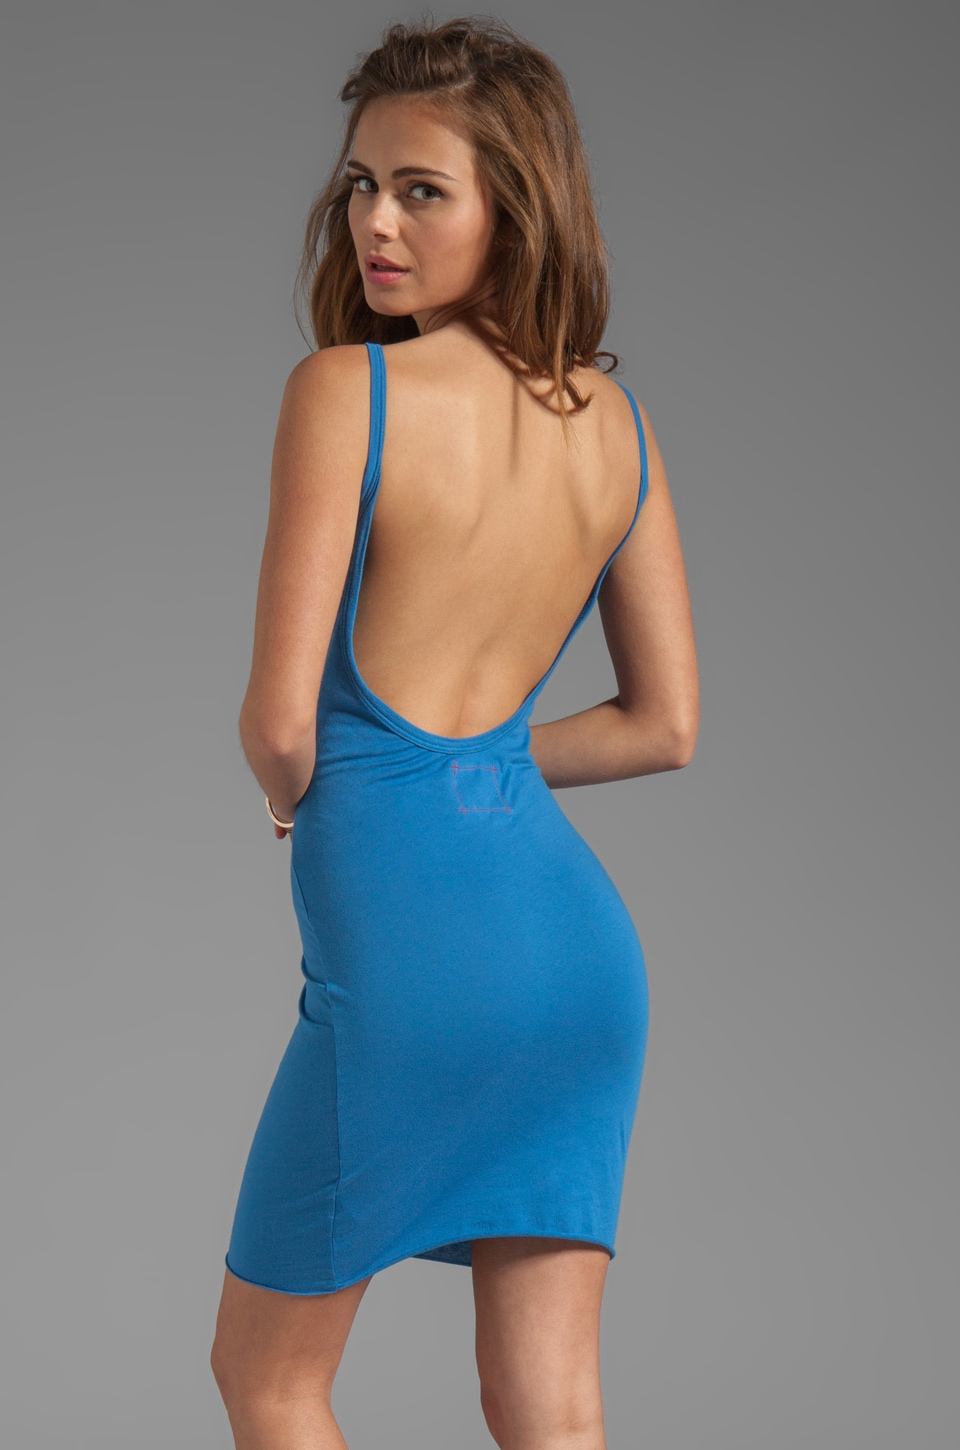 Daftbird Low Back Slip Tank in Bluebird